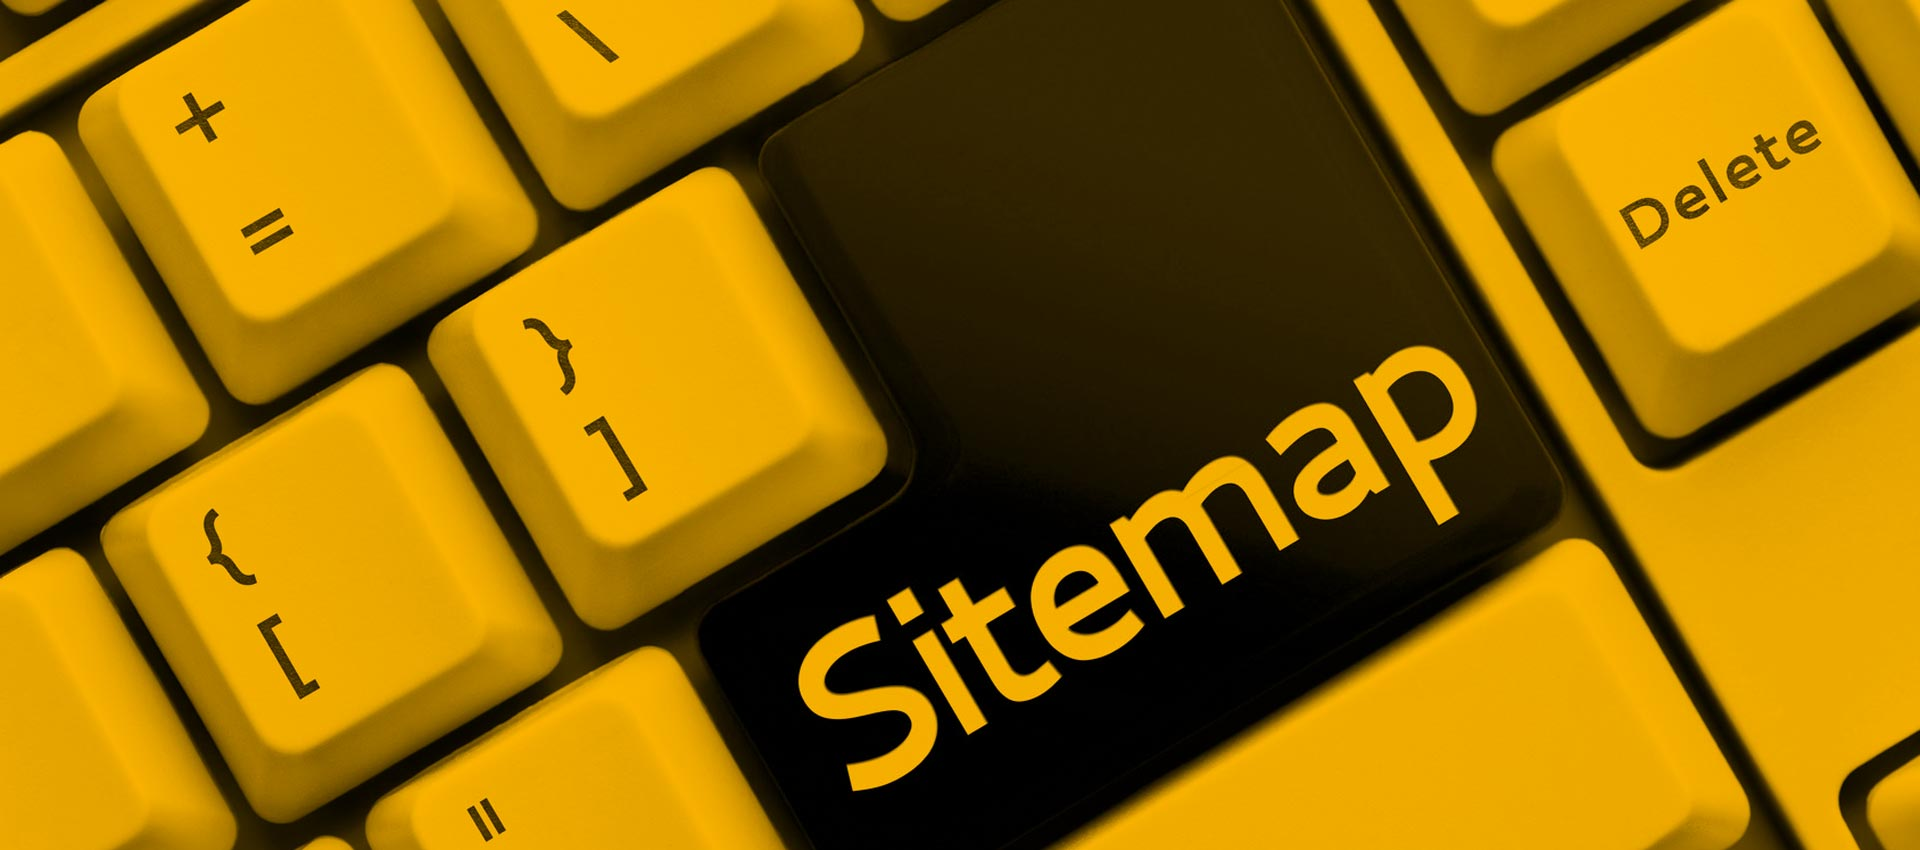 Sitemap - Websitestructure